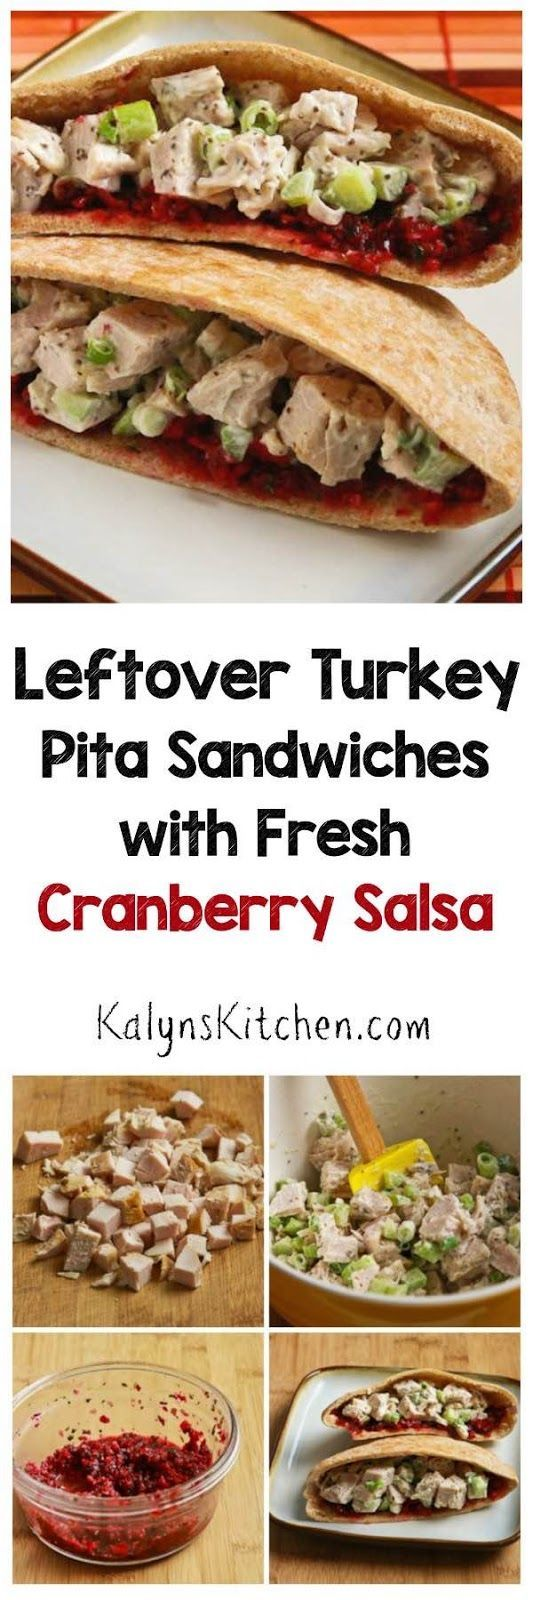 Easy Leftover Turkey Pita Sandwiches with Fresh Cranberry Salsa. A delicious recipe with a fantastic, easy cranberry salsa recipe.